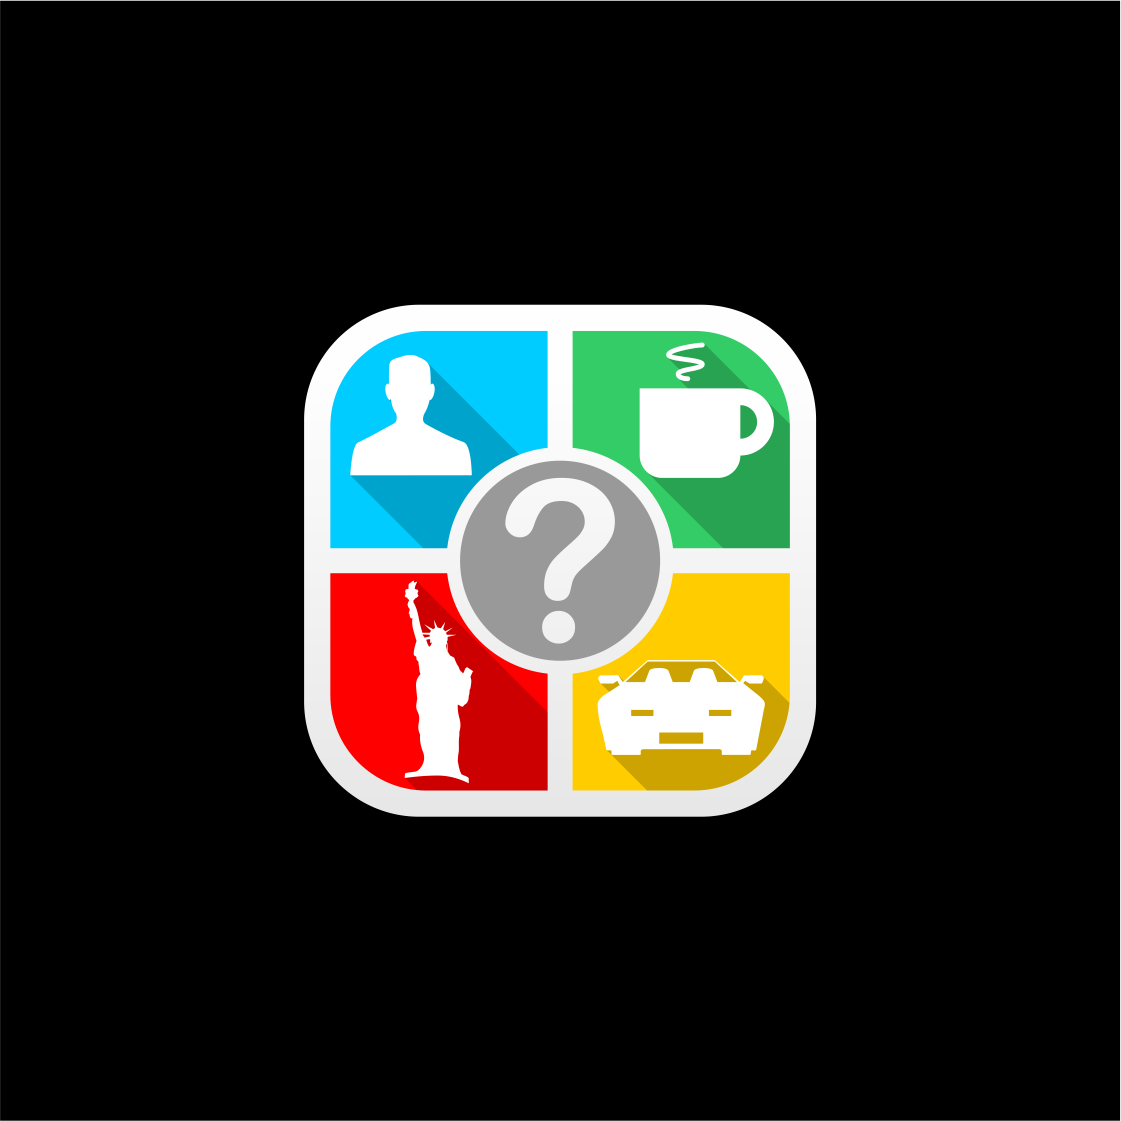 Create App Icon for an Exciting new iPhone Game